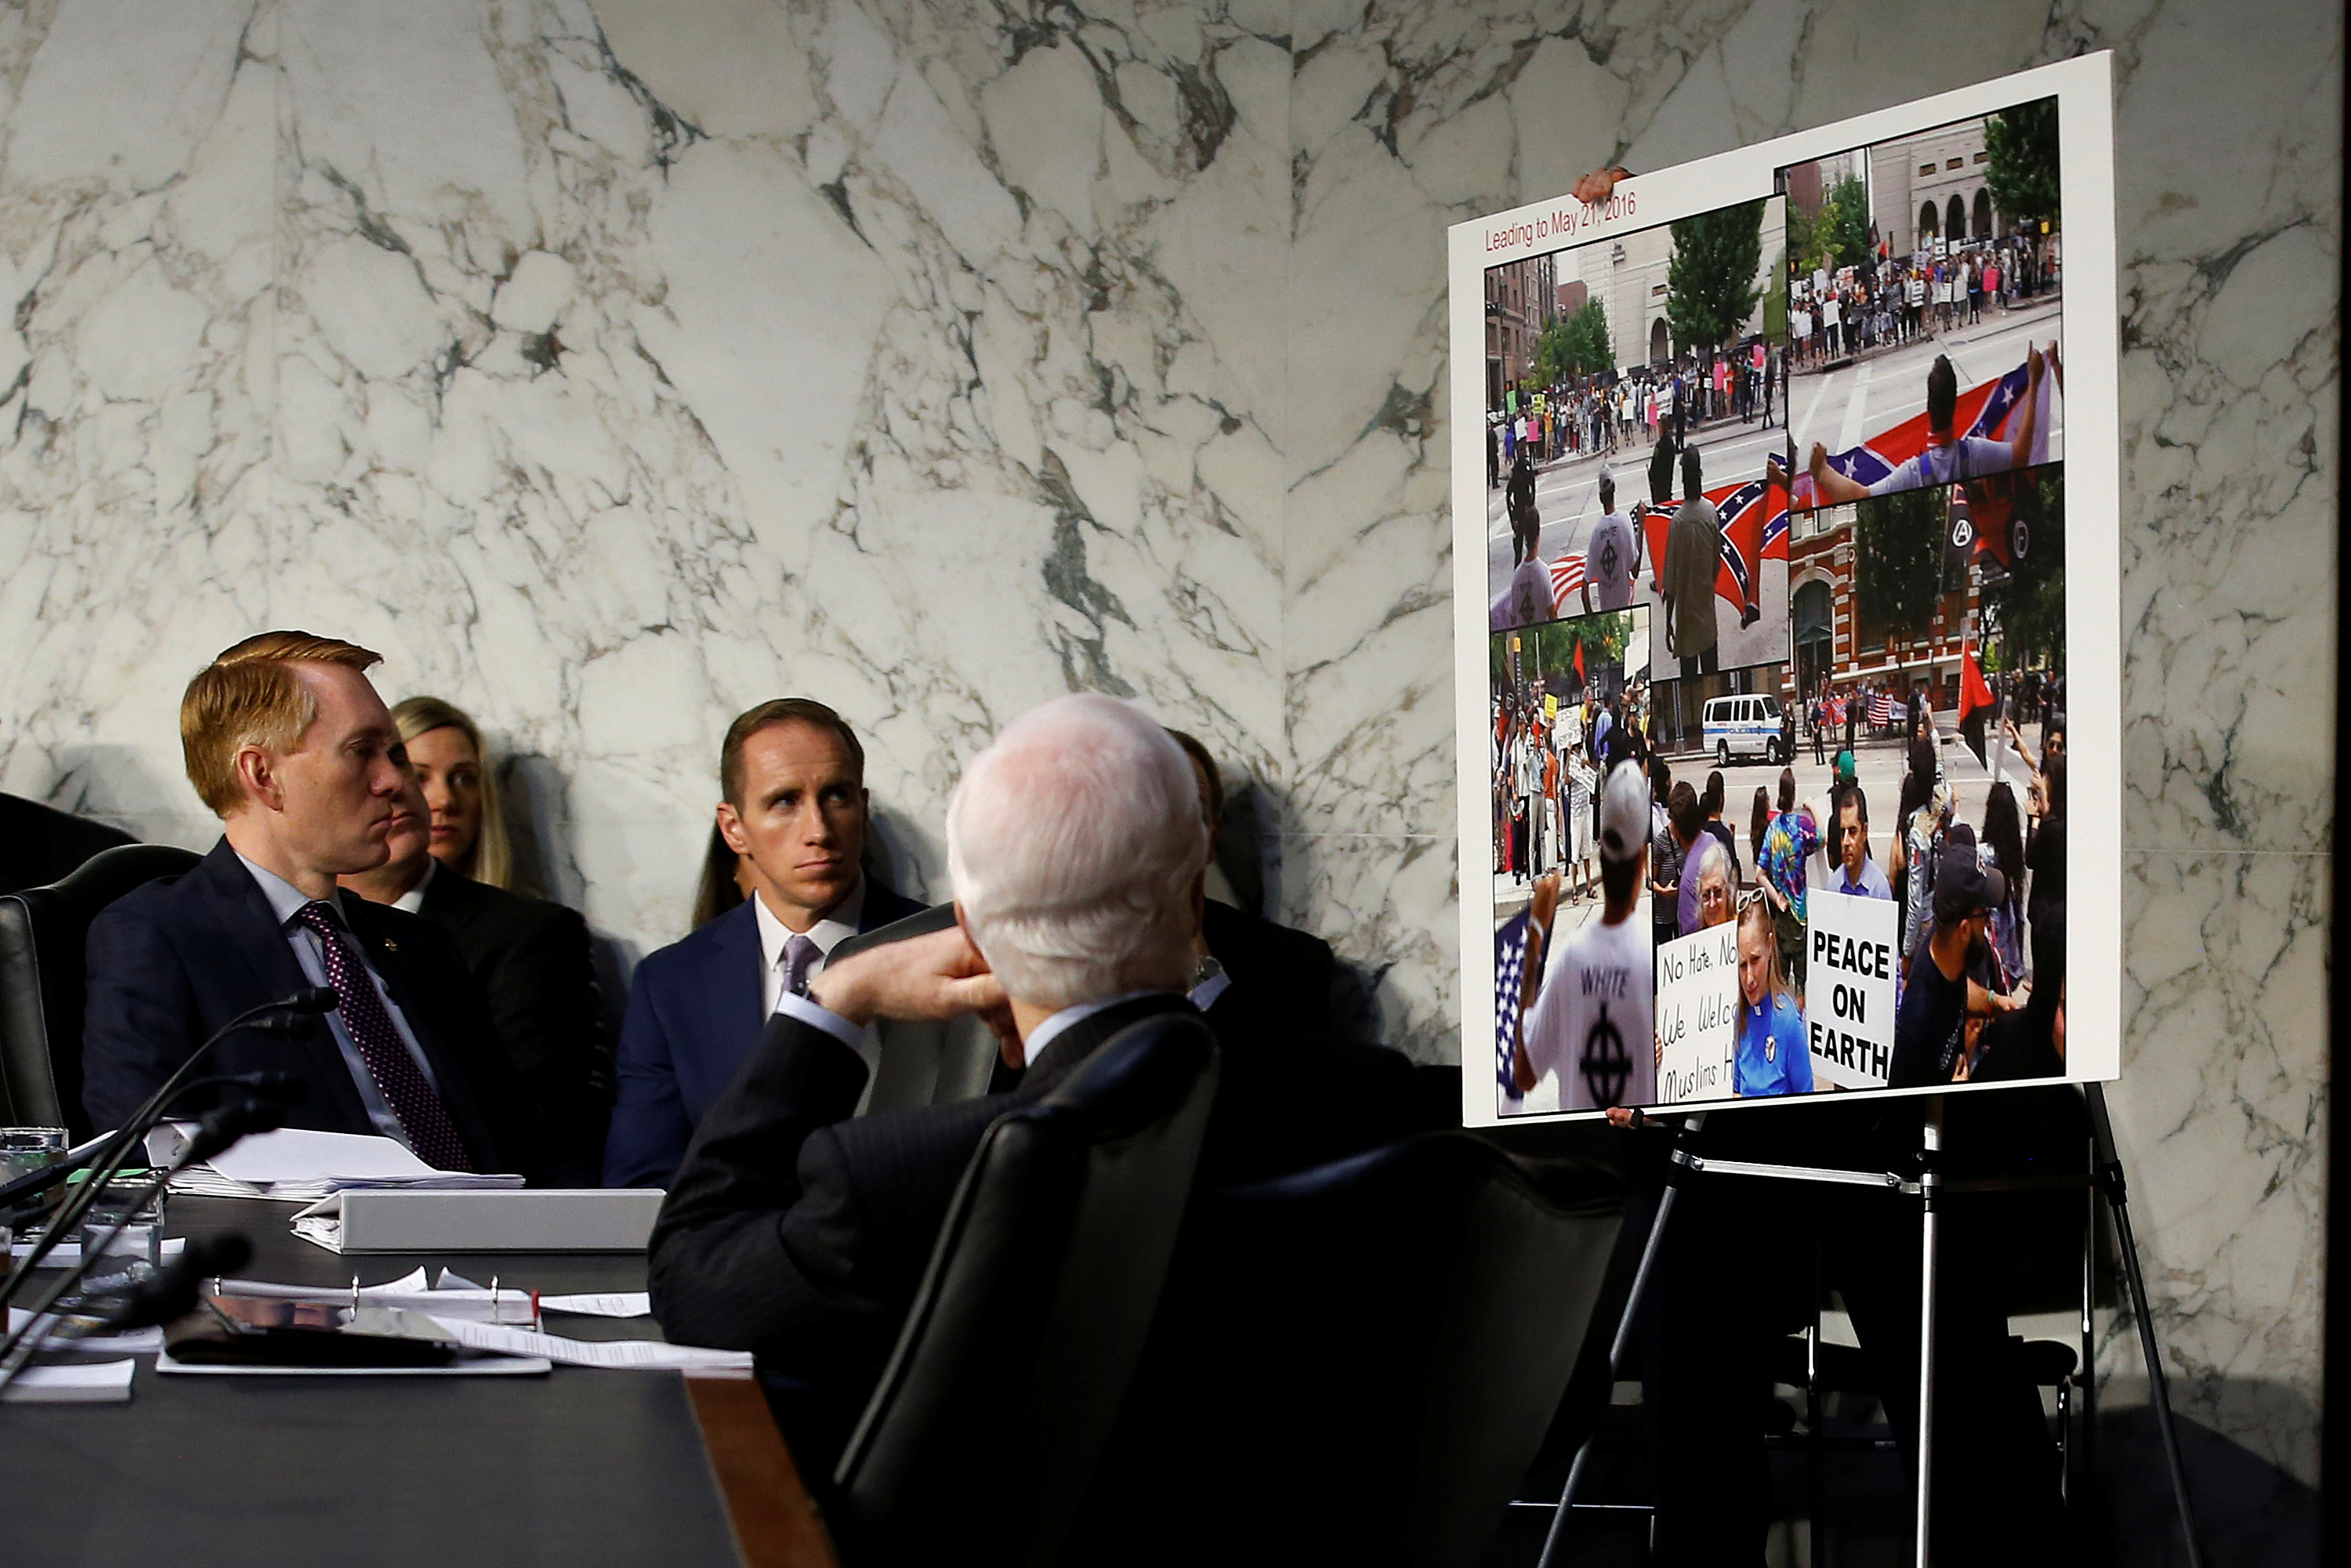 Senators look at a placard presented as evidence of Russian social media manipulation, during a Senate Intelligence Committee hearing to answer questions related to Russian use of social media to influence U.S. elections, on Capitol Hill in Washington, U.S., November 1, 2017.   REUTERS/Joshua Roberts